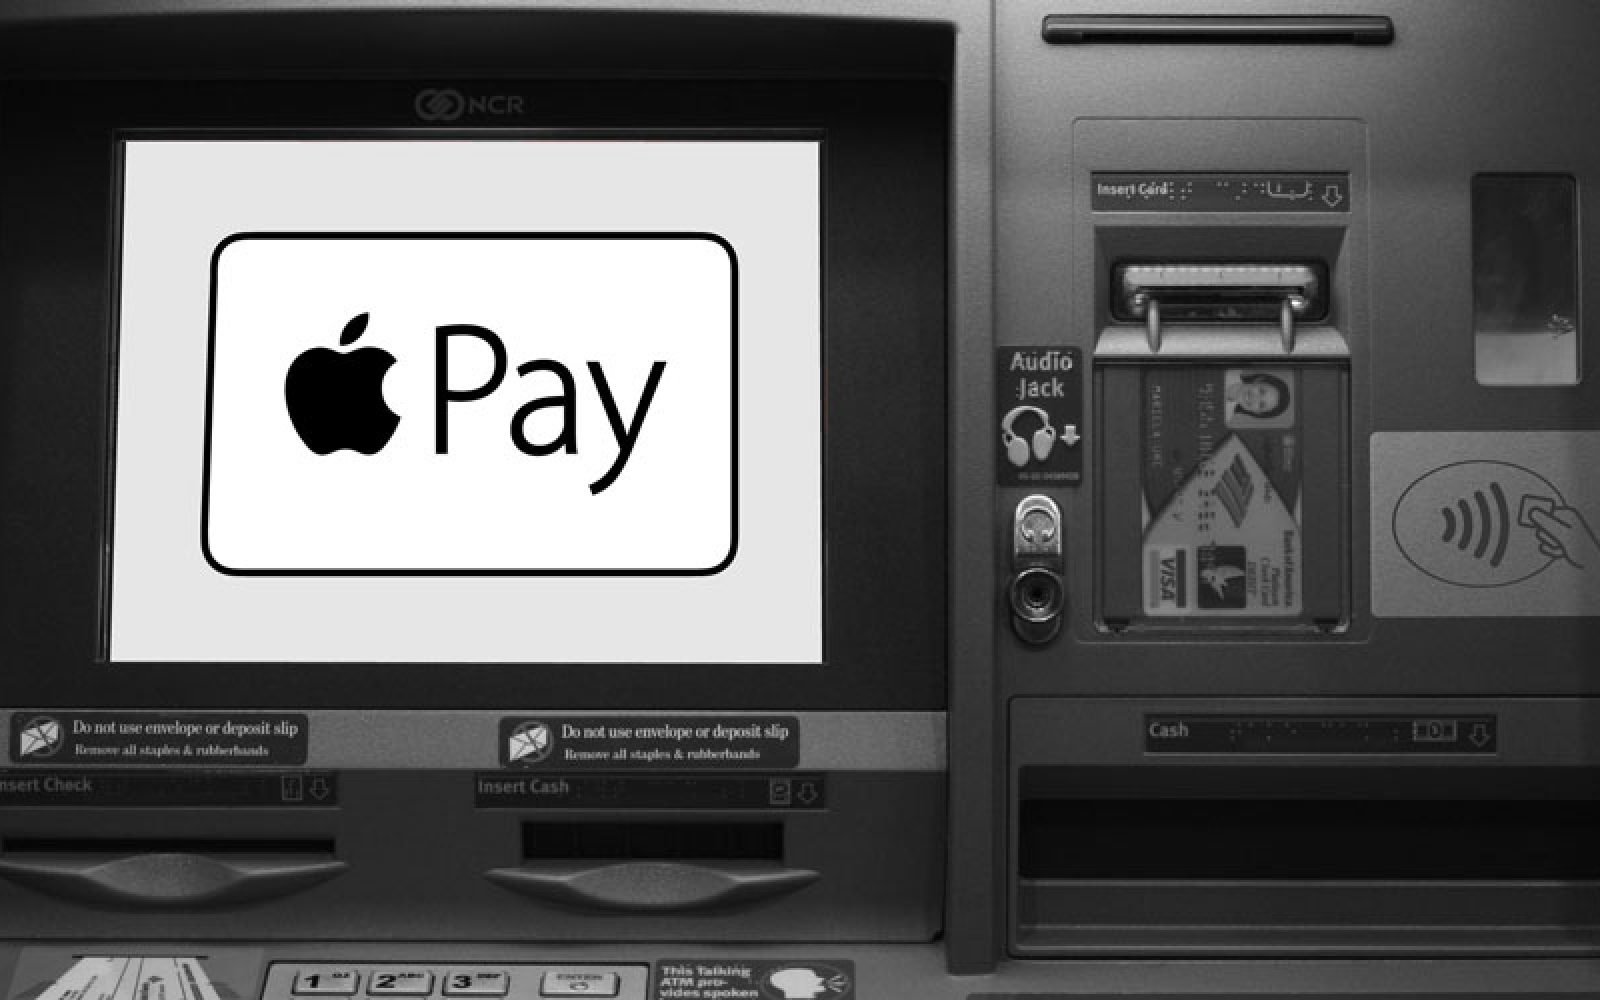 Wells Fargo Introducing Cardless Apple Pay ATM Withdrawals Later This Year